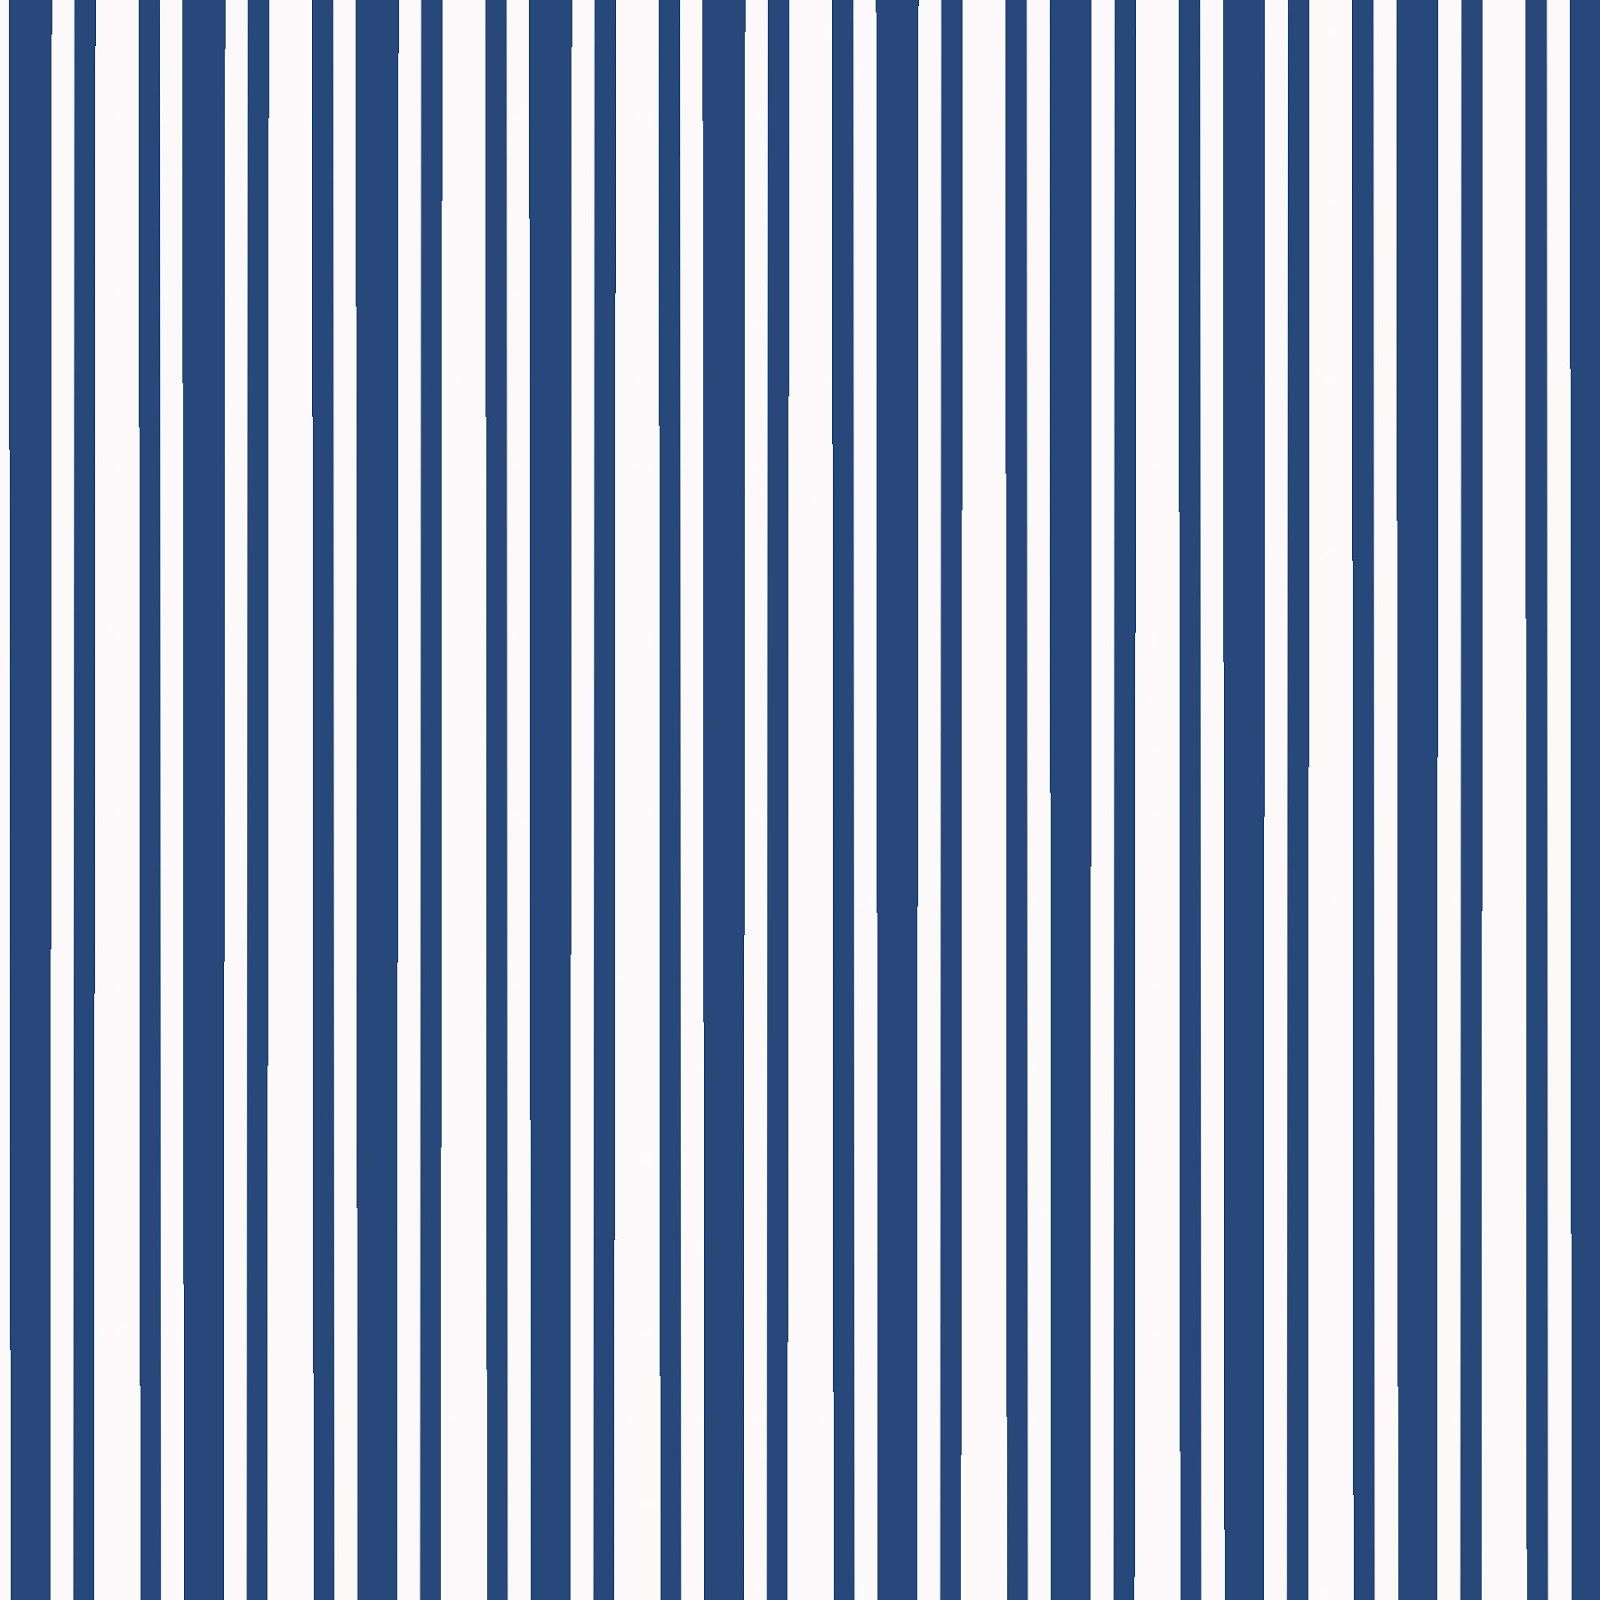 free+digital+scrapbook+paper+-+navy+stripes.jpg 1,600×1,600 pixels ...